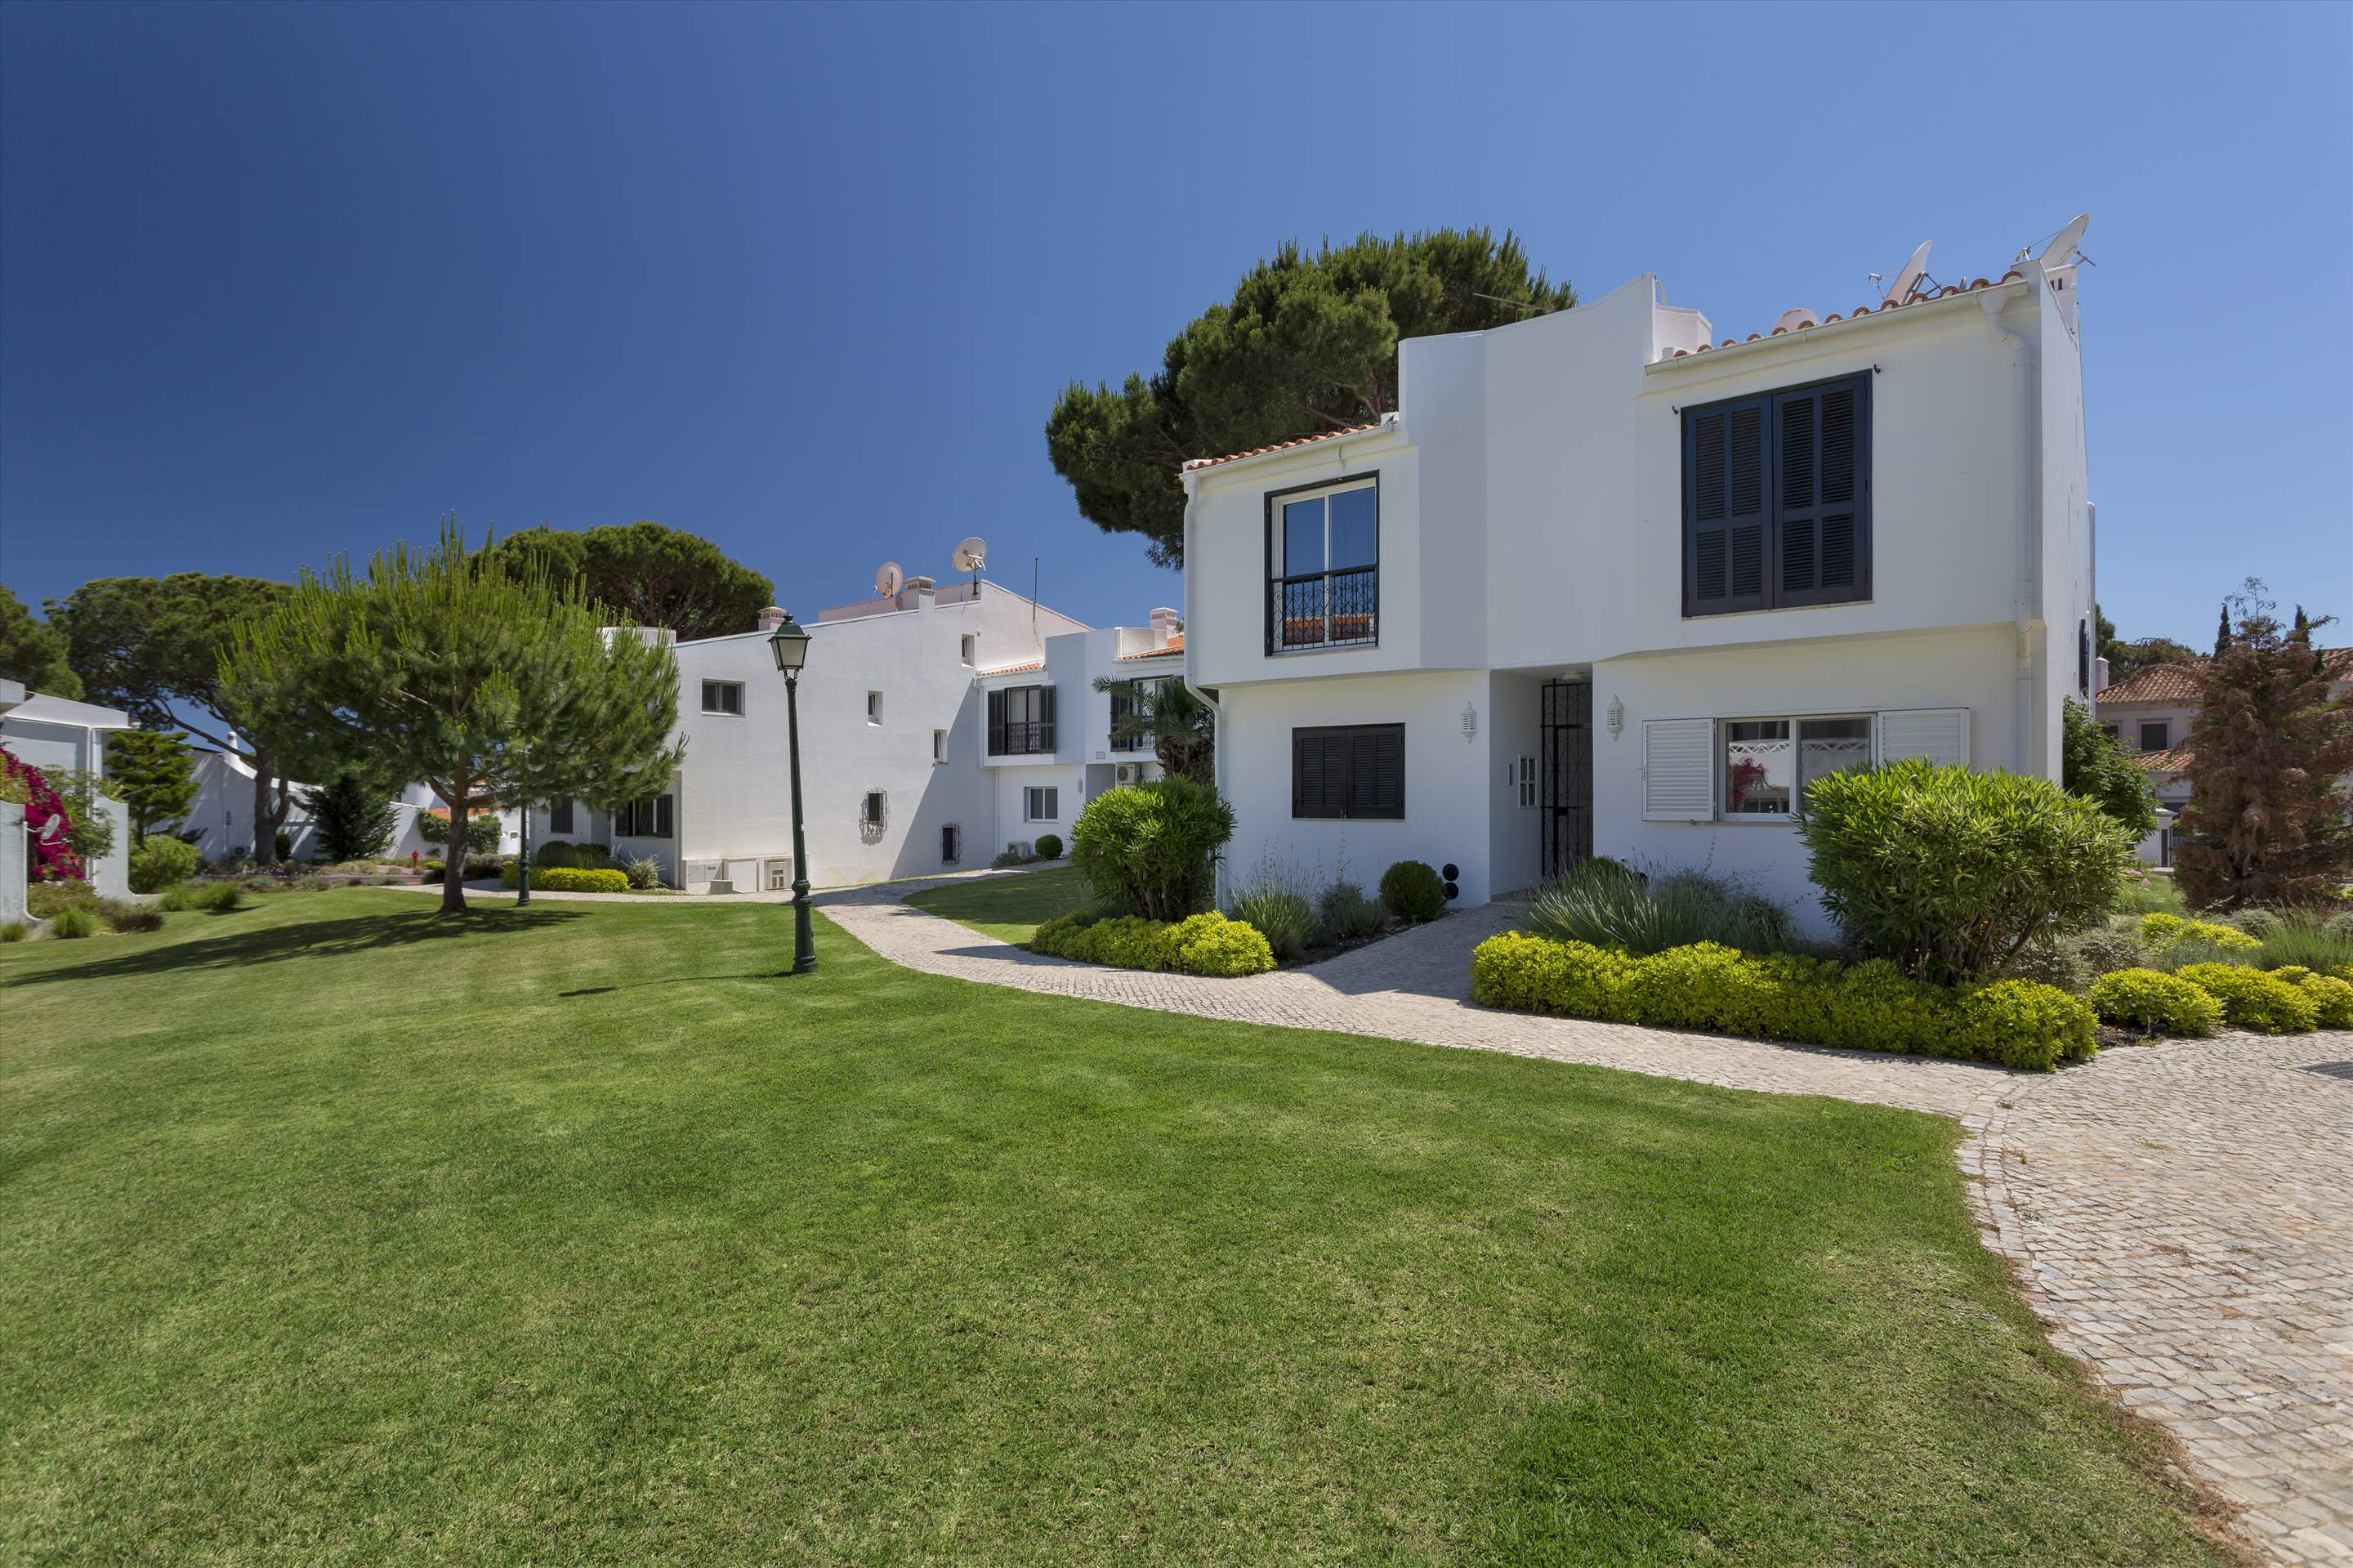 Apartment Bia, 1 bedroom apartment in Vale do Lobo, Algarve